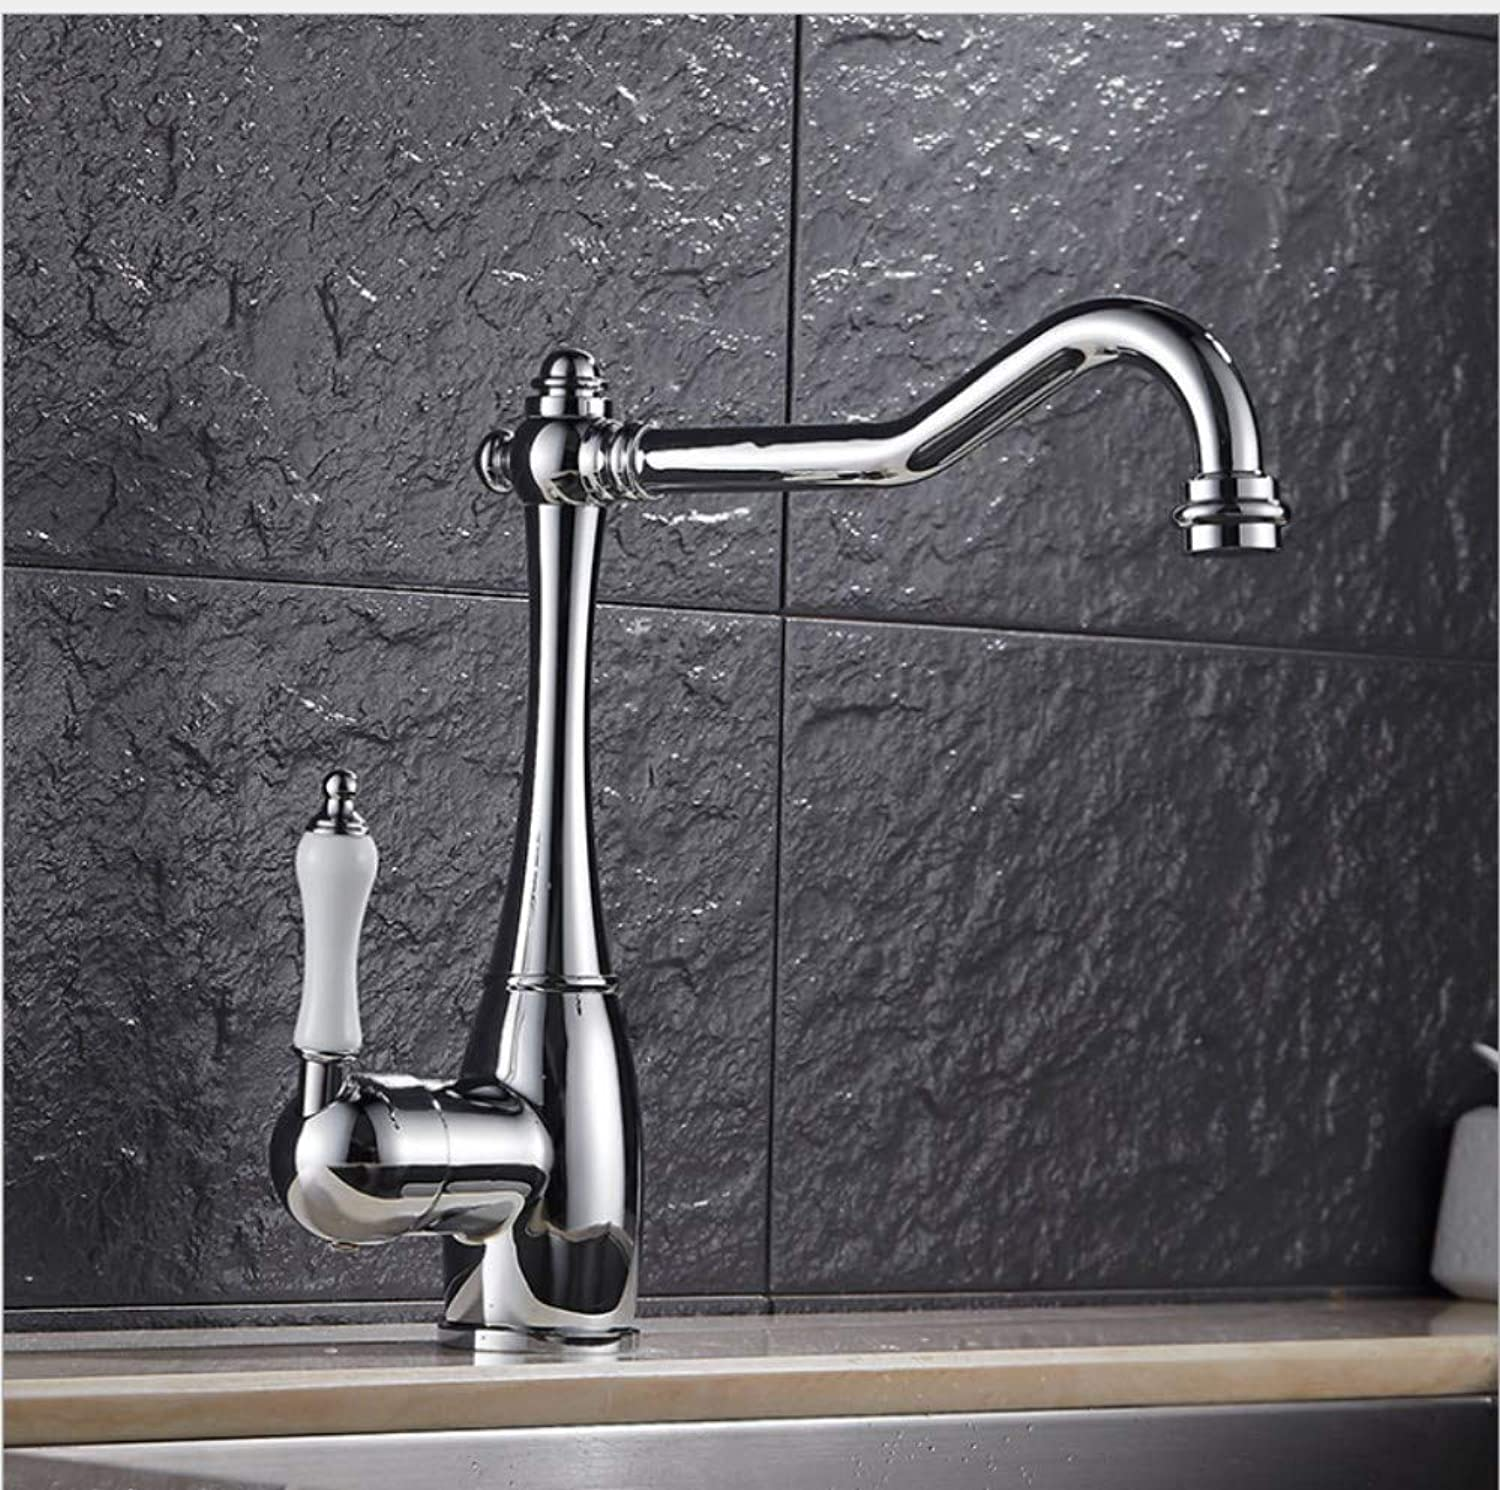 Bathroom Sink Basin Lever Mixer Tap European Kitchen Faucet redary Tank, Vegetable Washing Tank, Cold and Hot Water Faucet